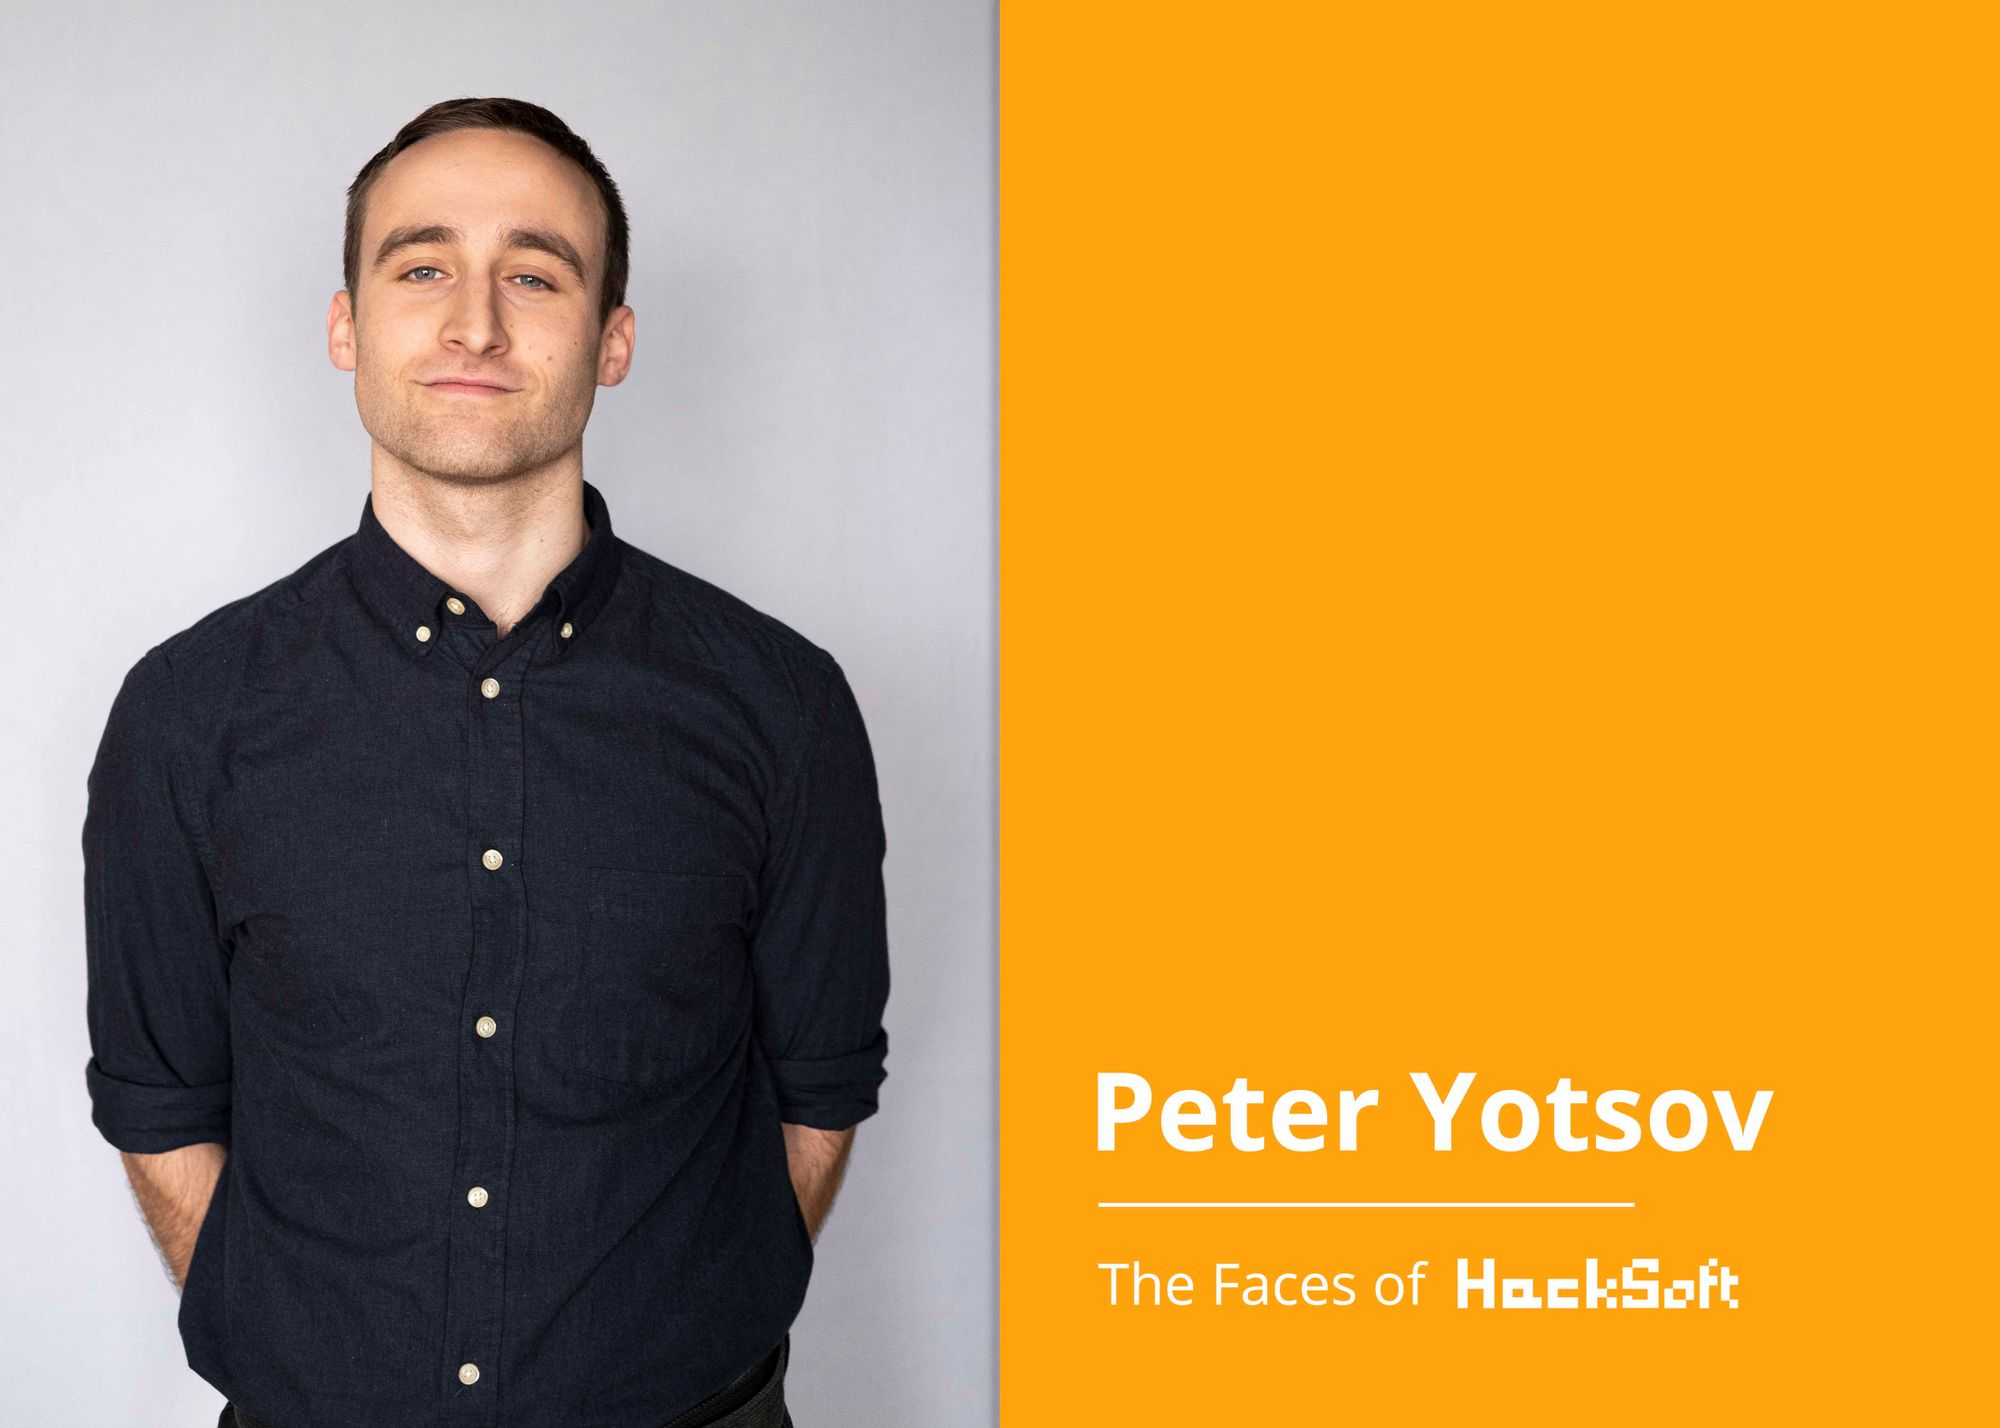 Behind any successful company, stands a motivated team. We would love to introduce you to Peter Yotsov.